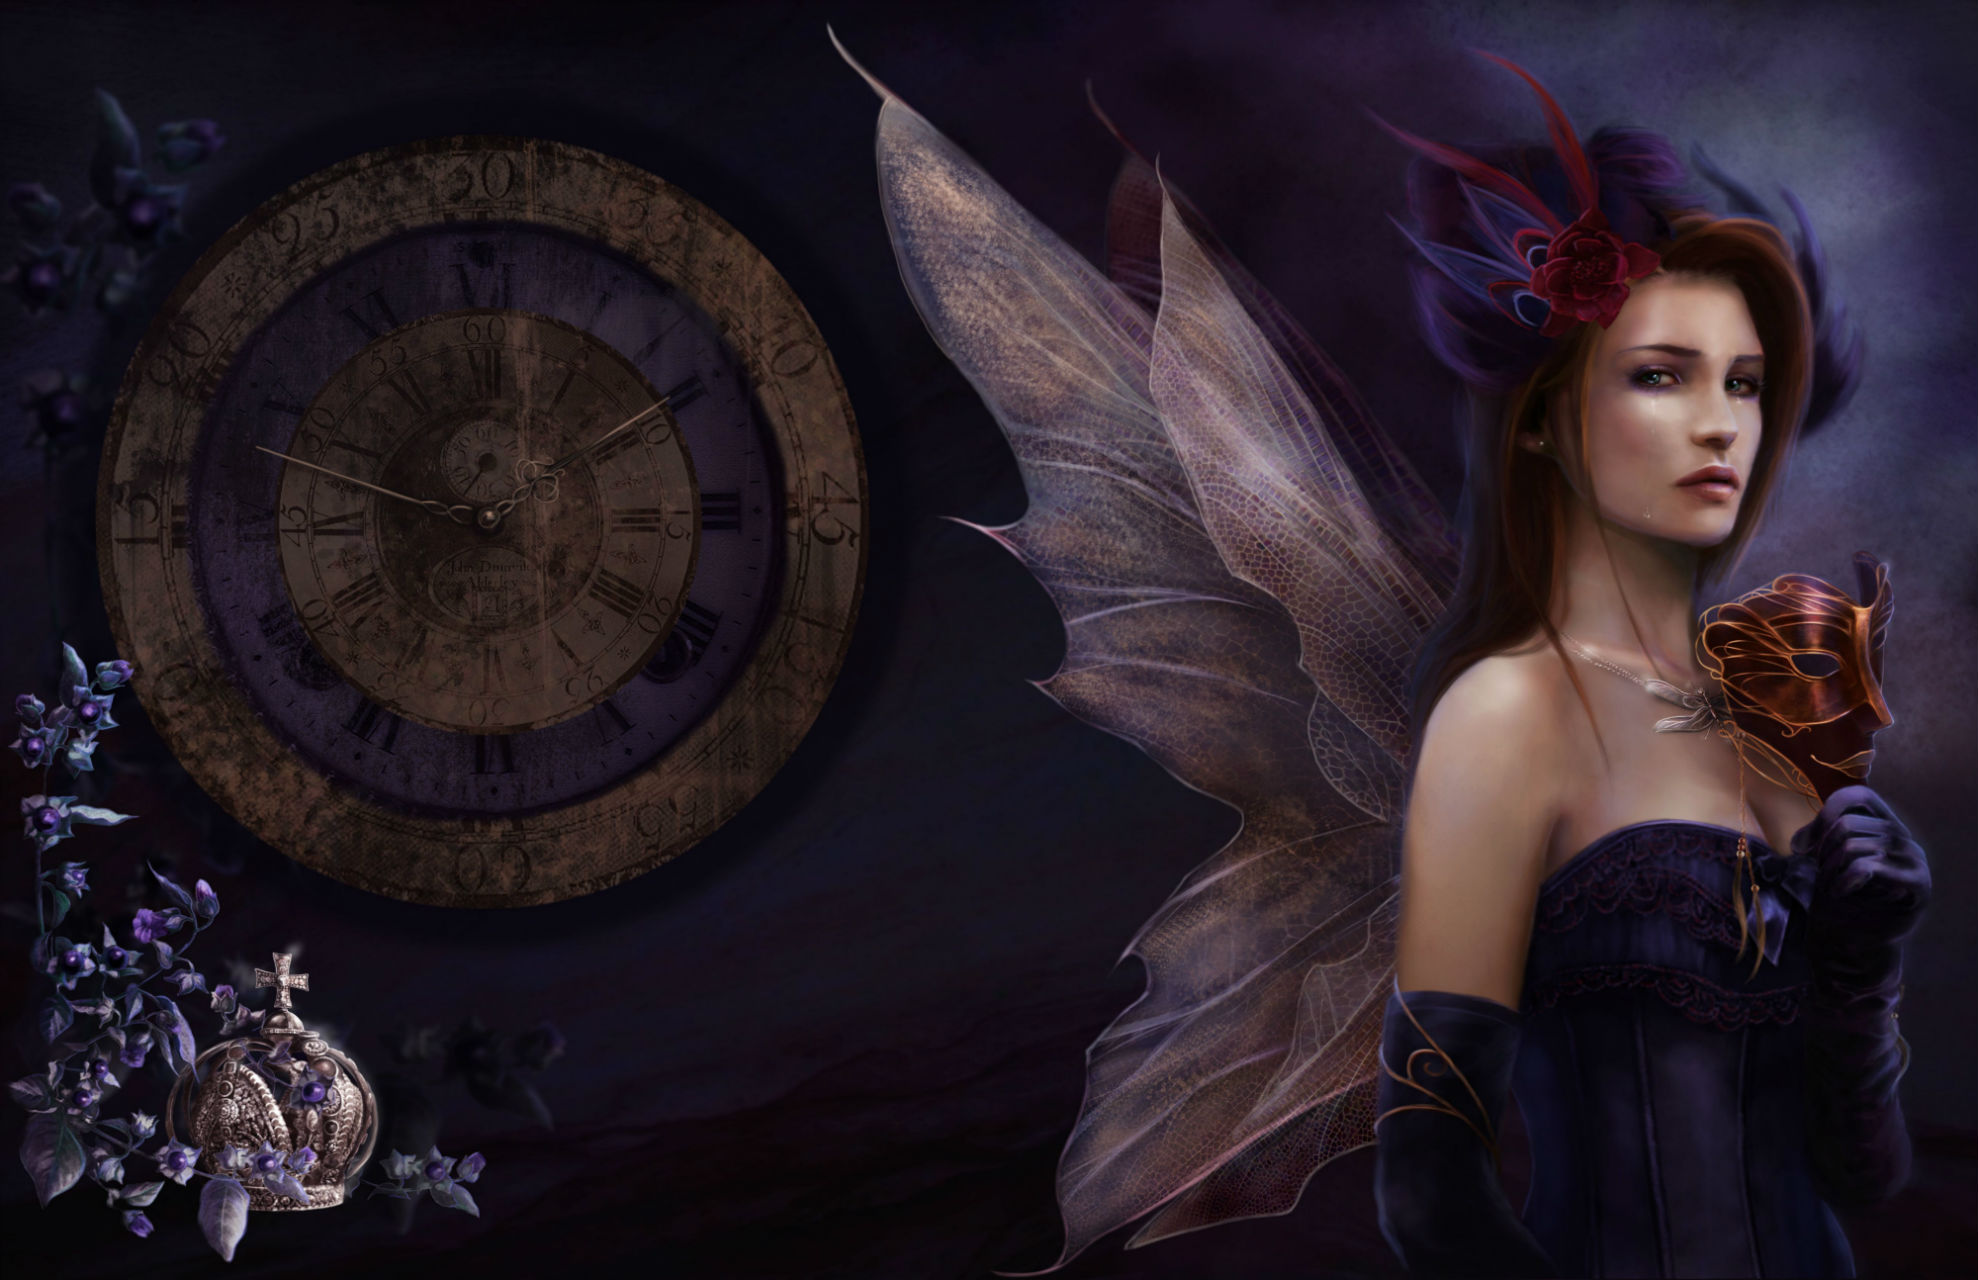 Fantasy gothic fairy time women art wallpaper 1978x1280 29989 1978x1280